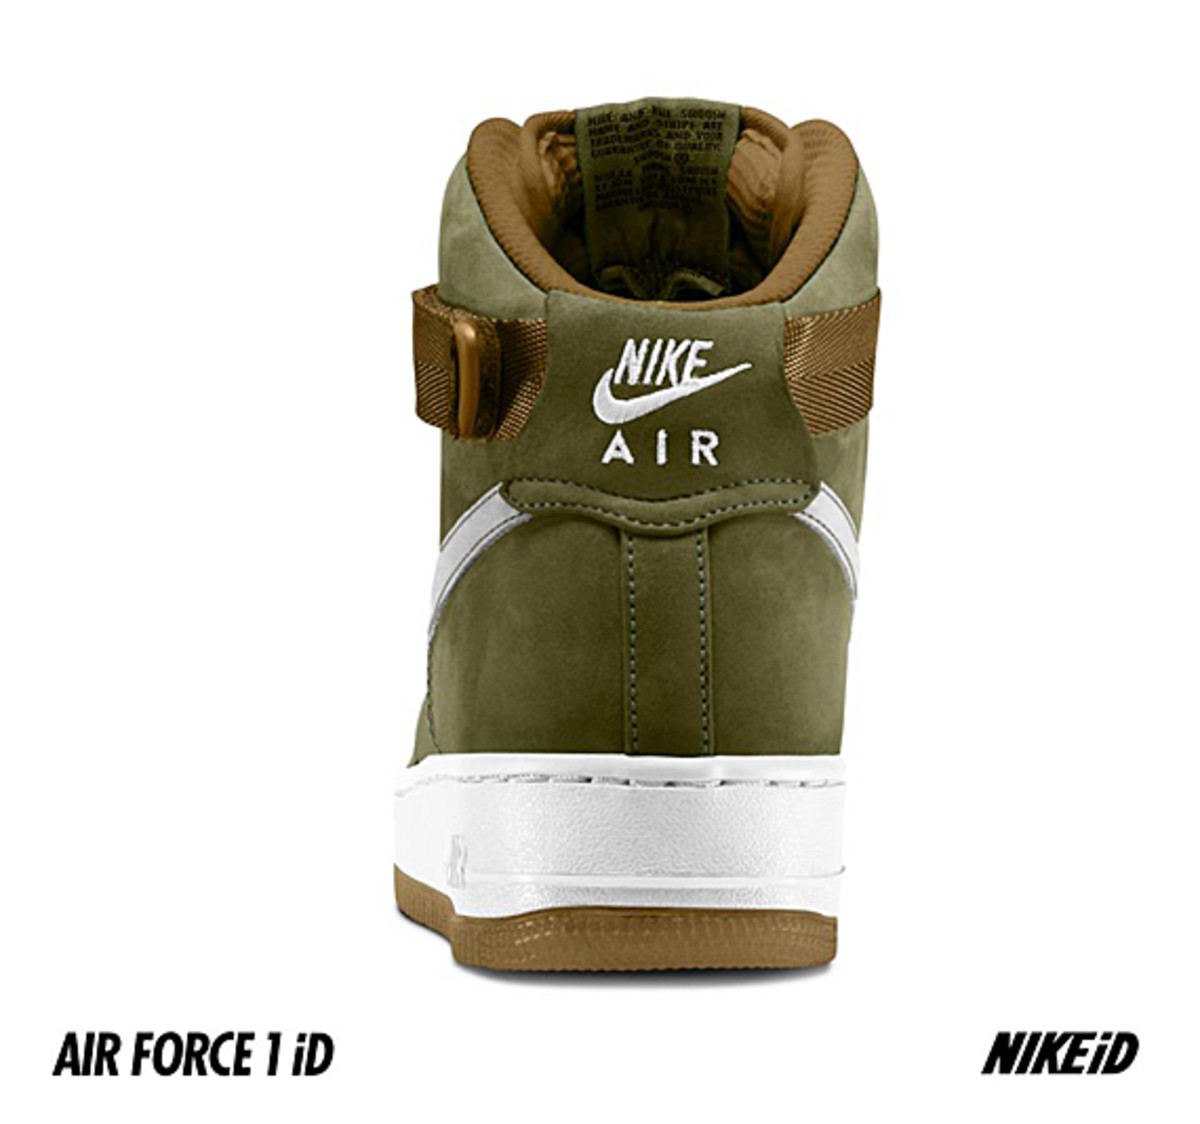 nikeid-air-force-1-id-10th-mountain-division-07